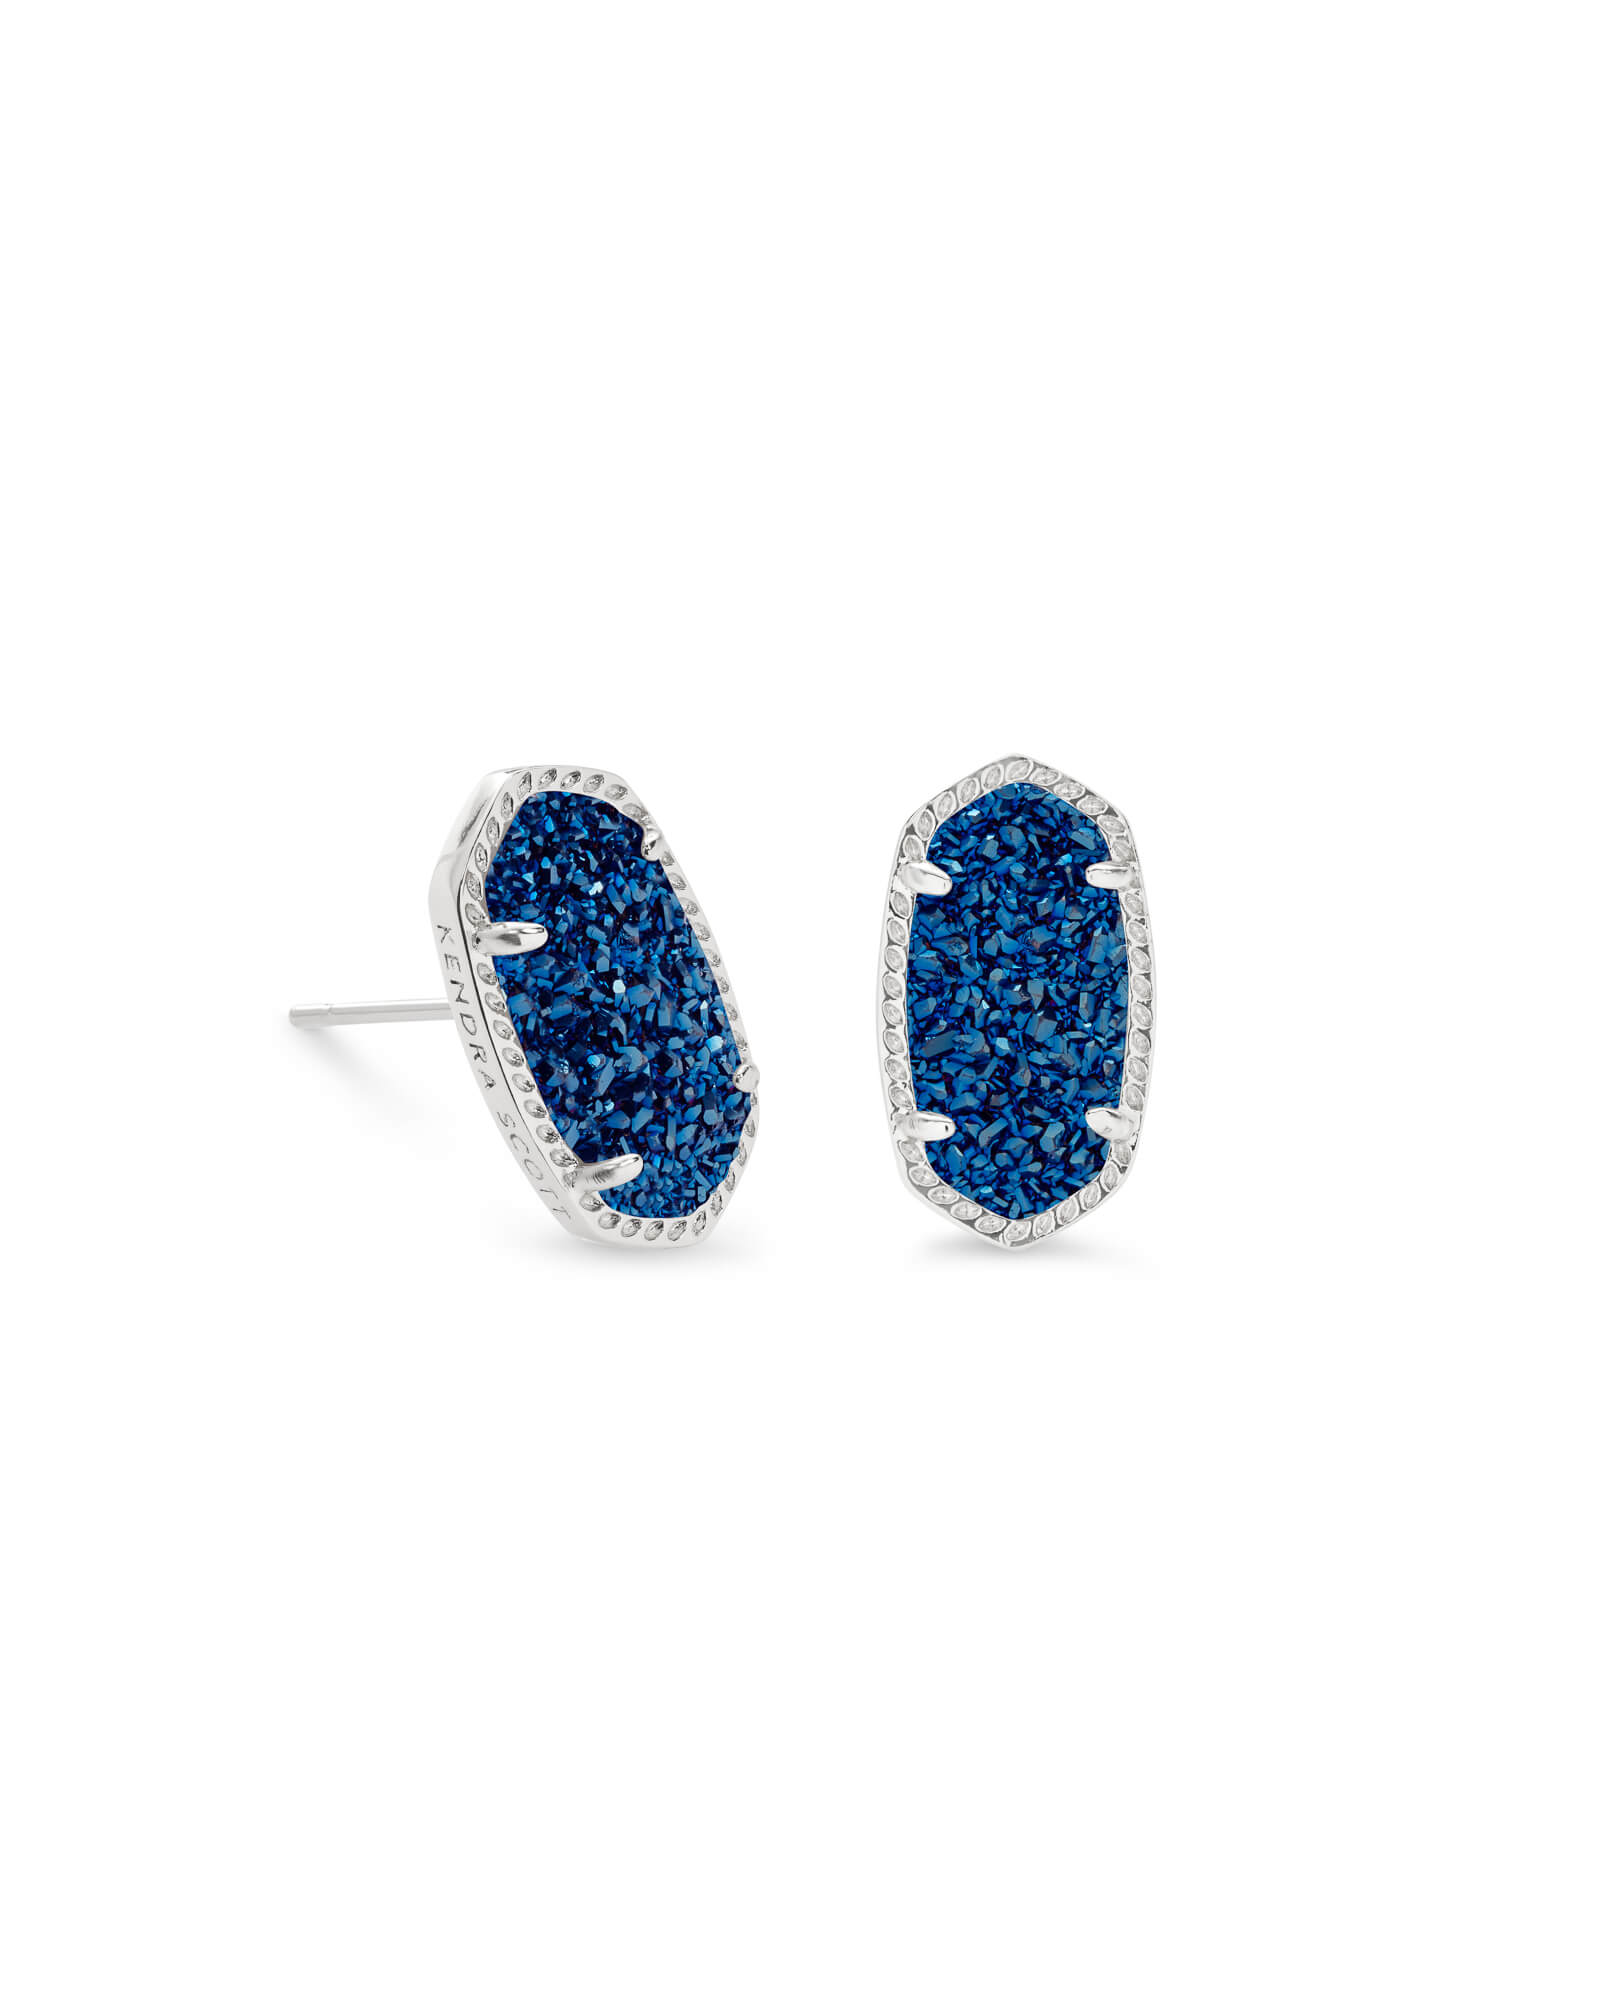 Ellie Silver Stud Earrings in Blue Drusy